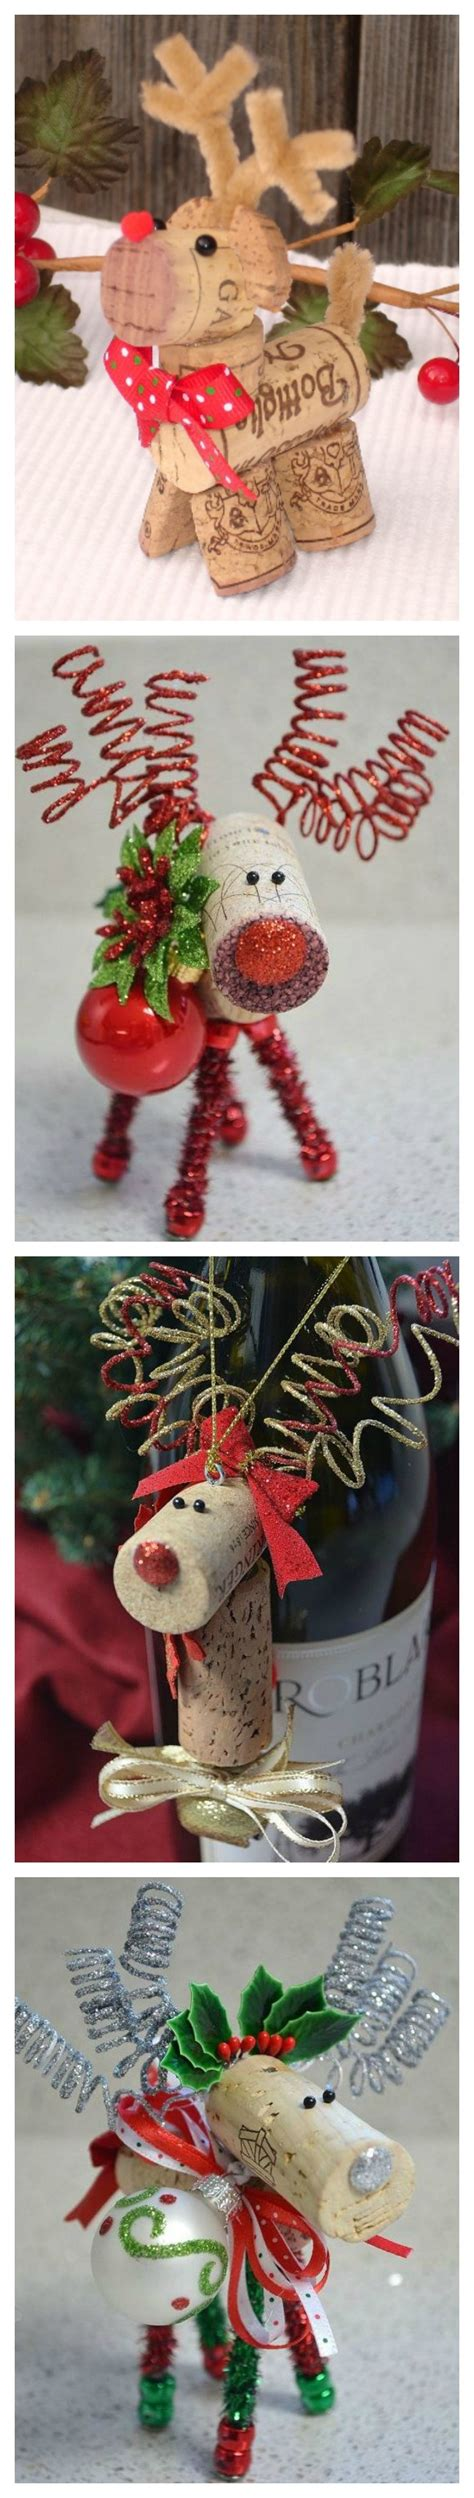 christmas cork idea images 17 epic craft ideas pretty my